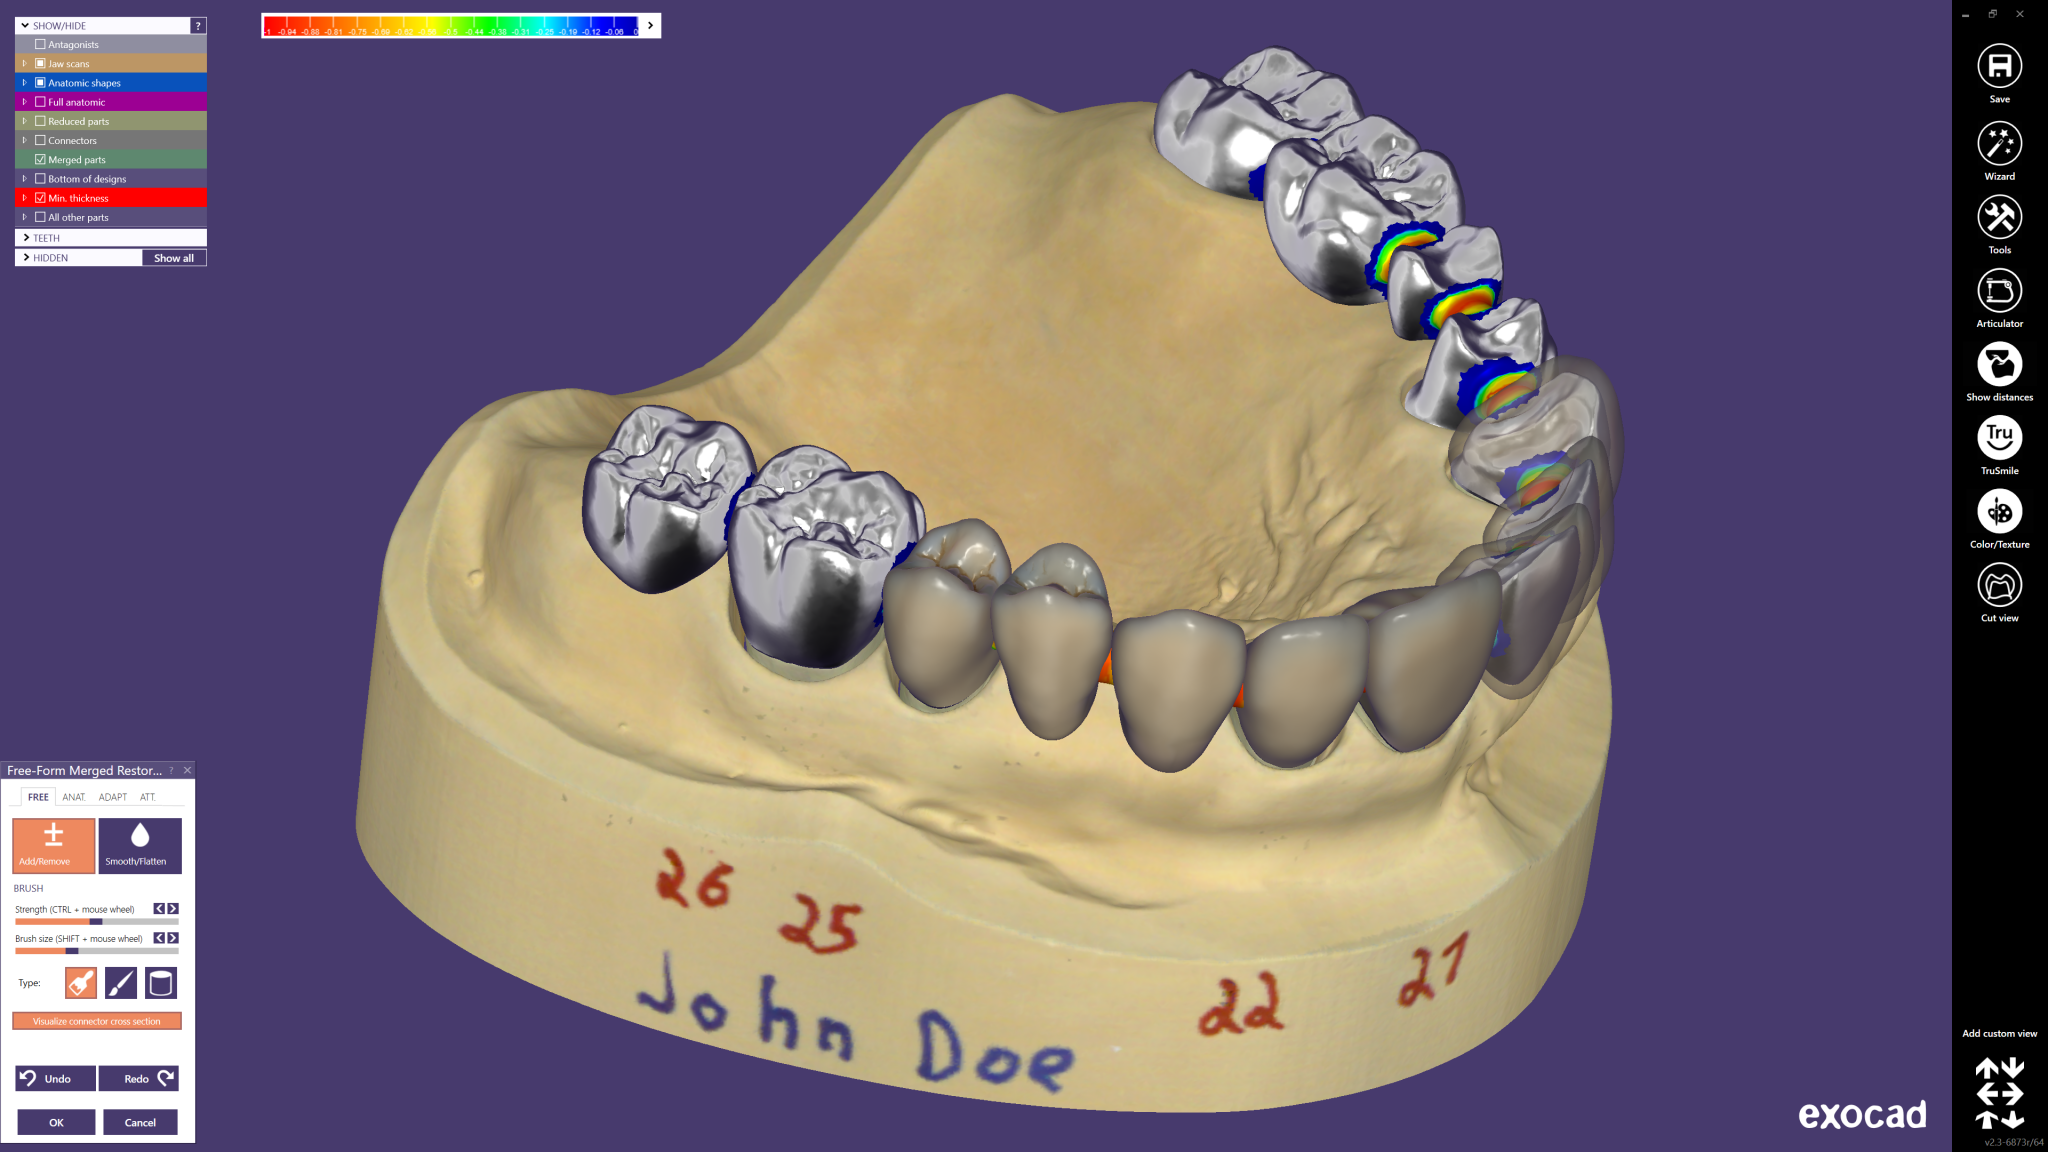 exocad-DentalCAD-Page-05-Preview-2048x1152